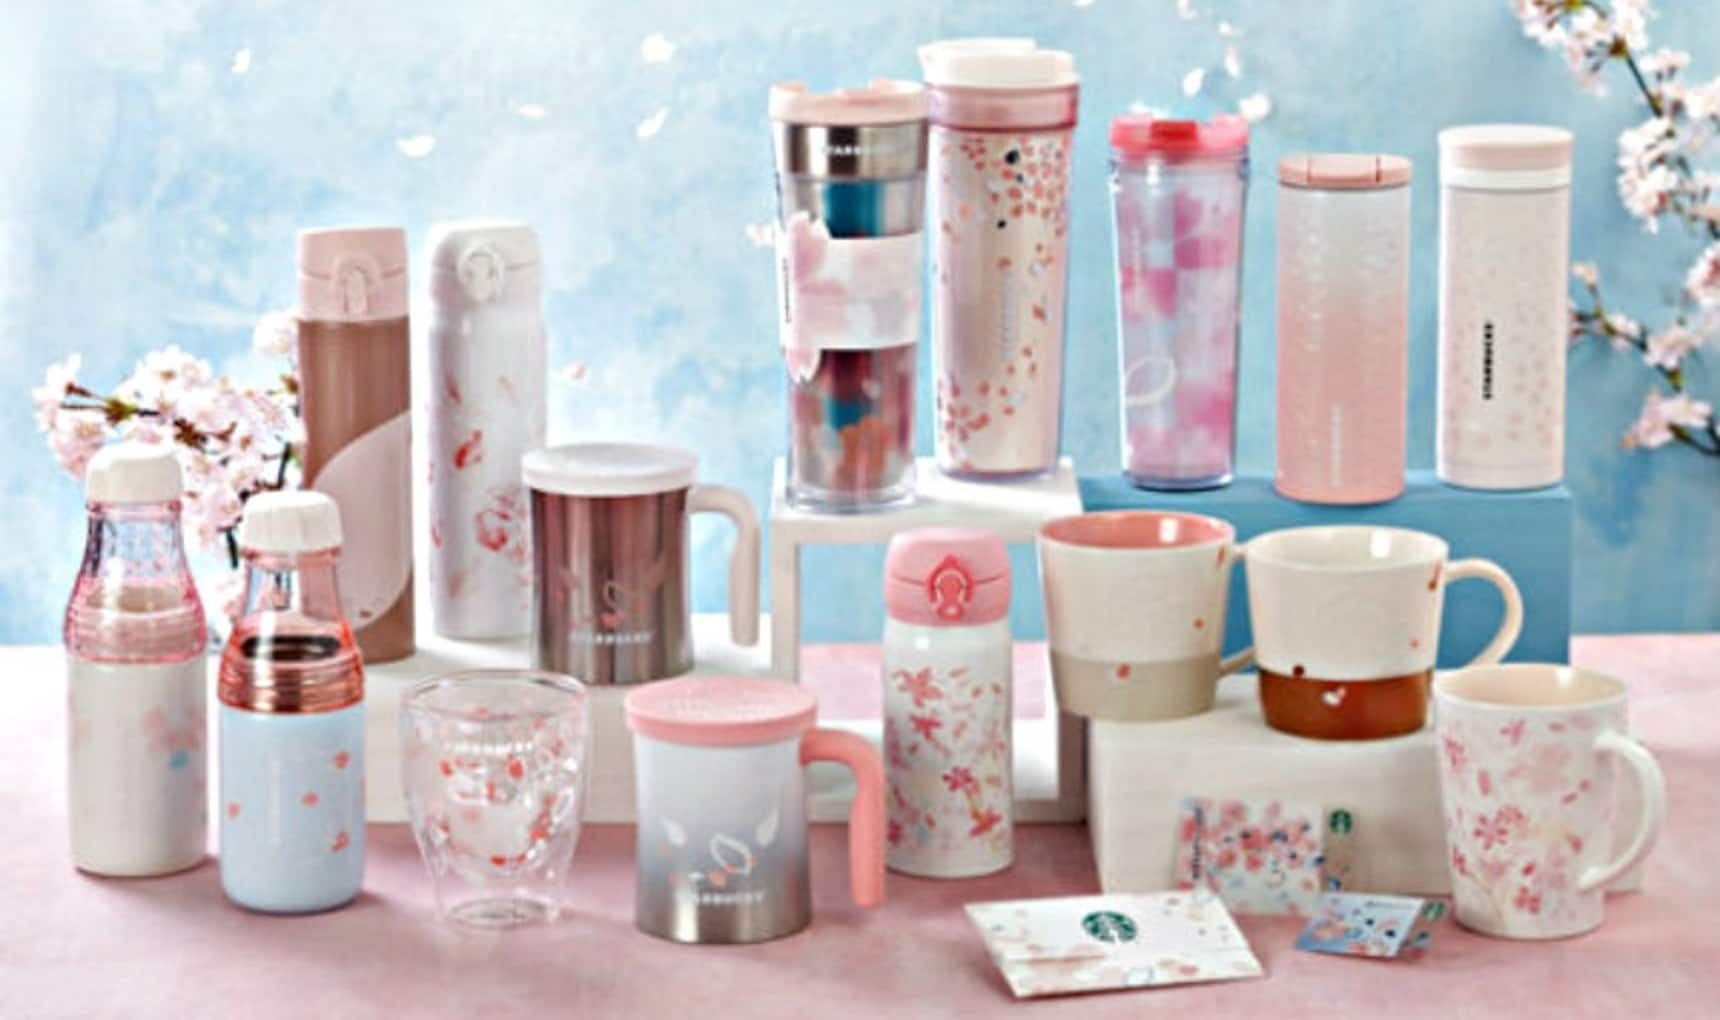 Sakura Themed Drinks Amp Merchandise Galore All About Japan